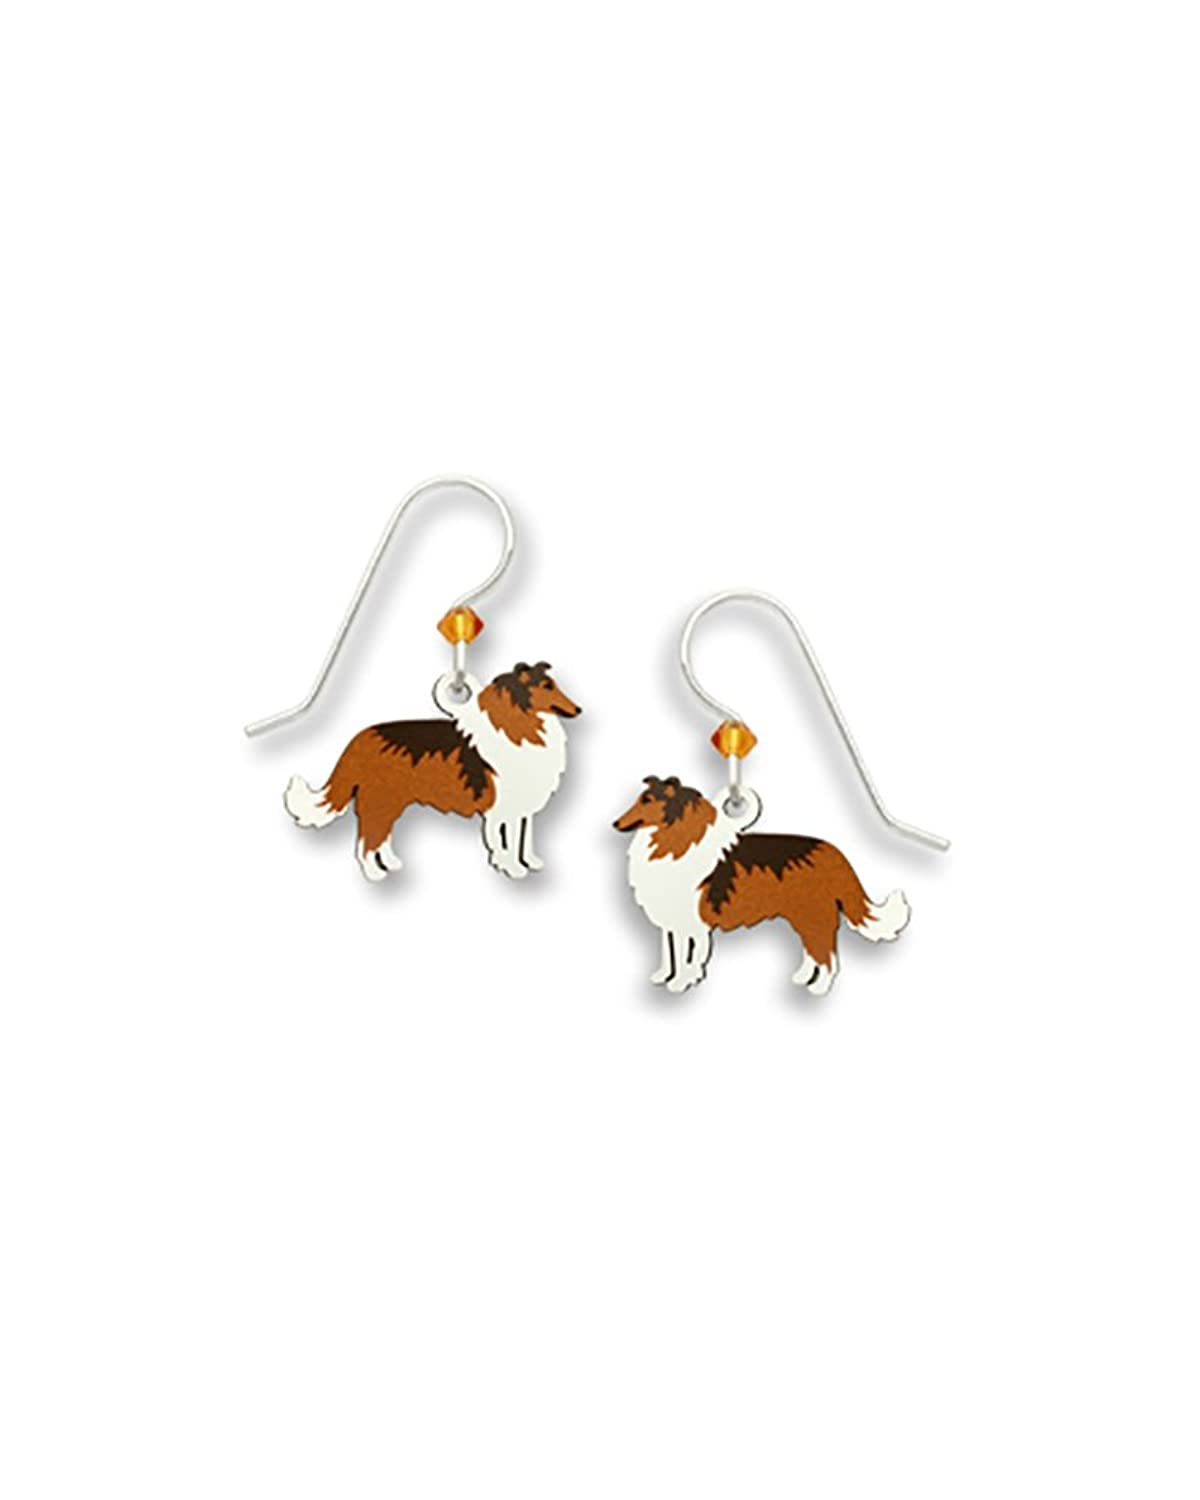 """Lassie"" Collie Dog Earrings Made in USA by Sienna Sky si1634"